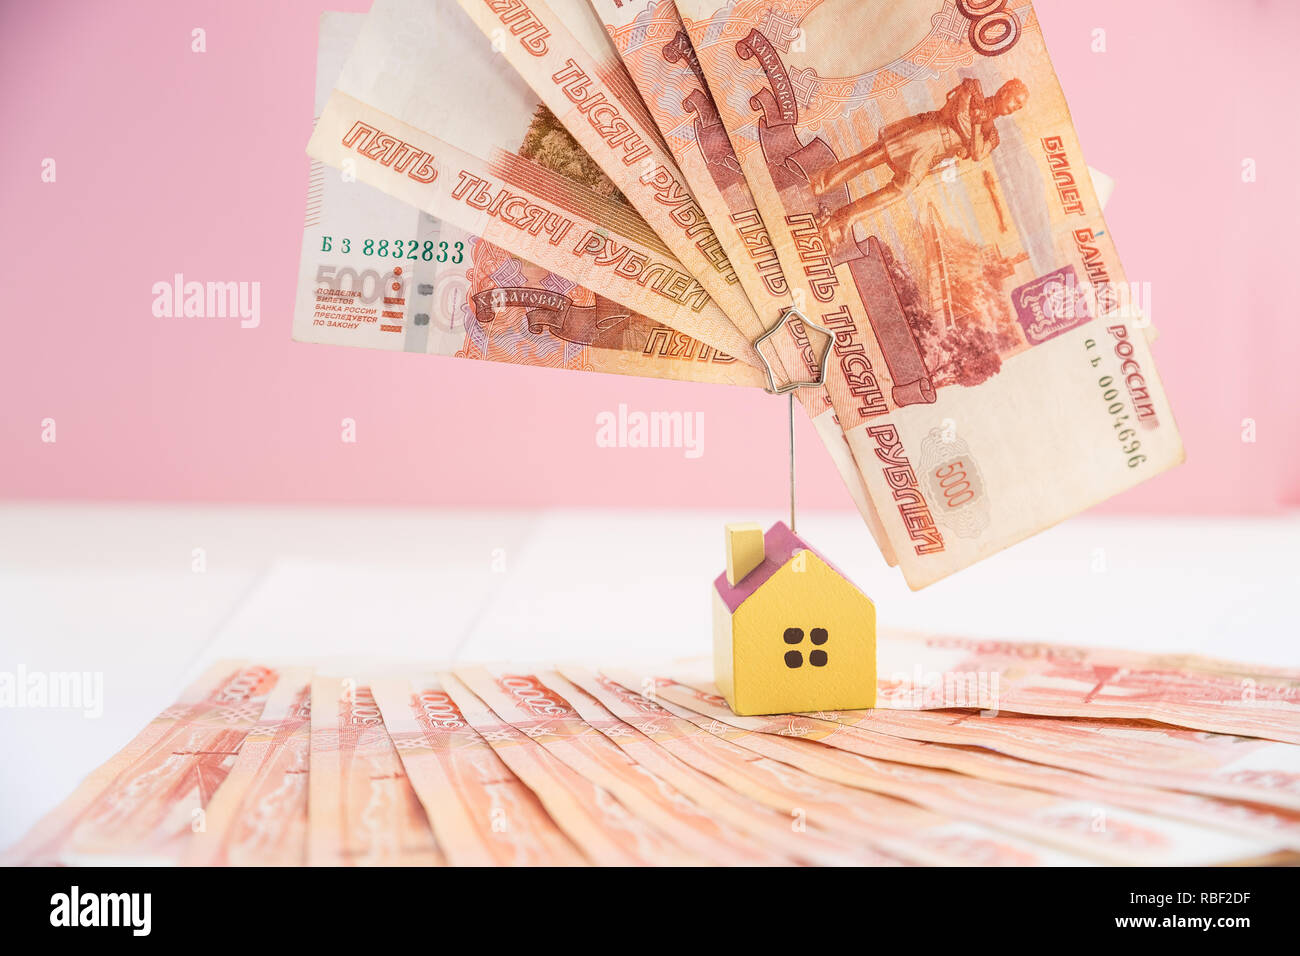 Mortgage loading real estate property with loan money bank concept.money and miniature house model isolated on pink background.Business, finance,saving money,banking ,house loan or insurance concept.russian money. - Stock Image